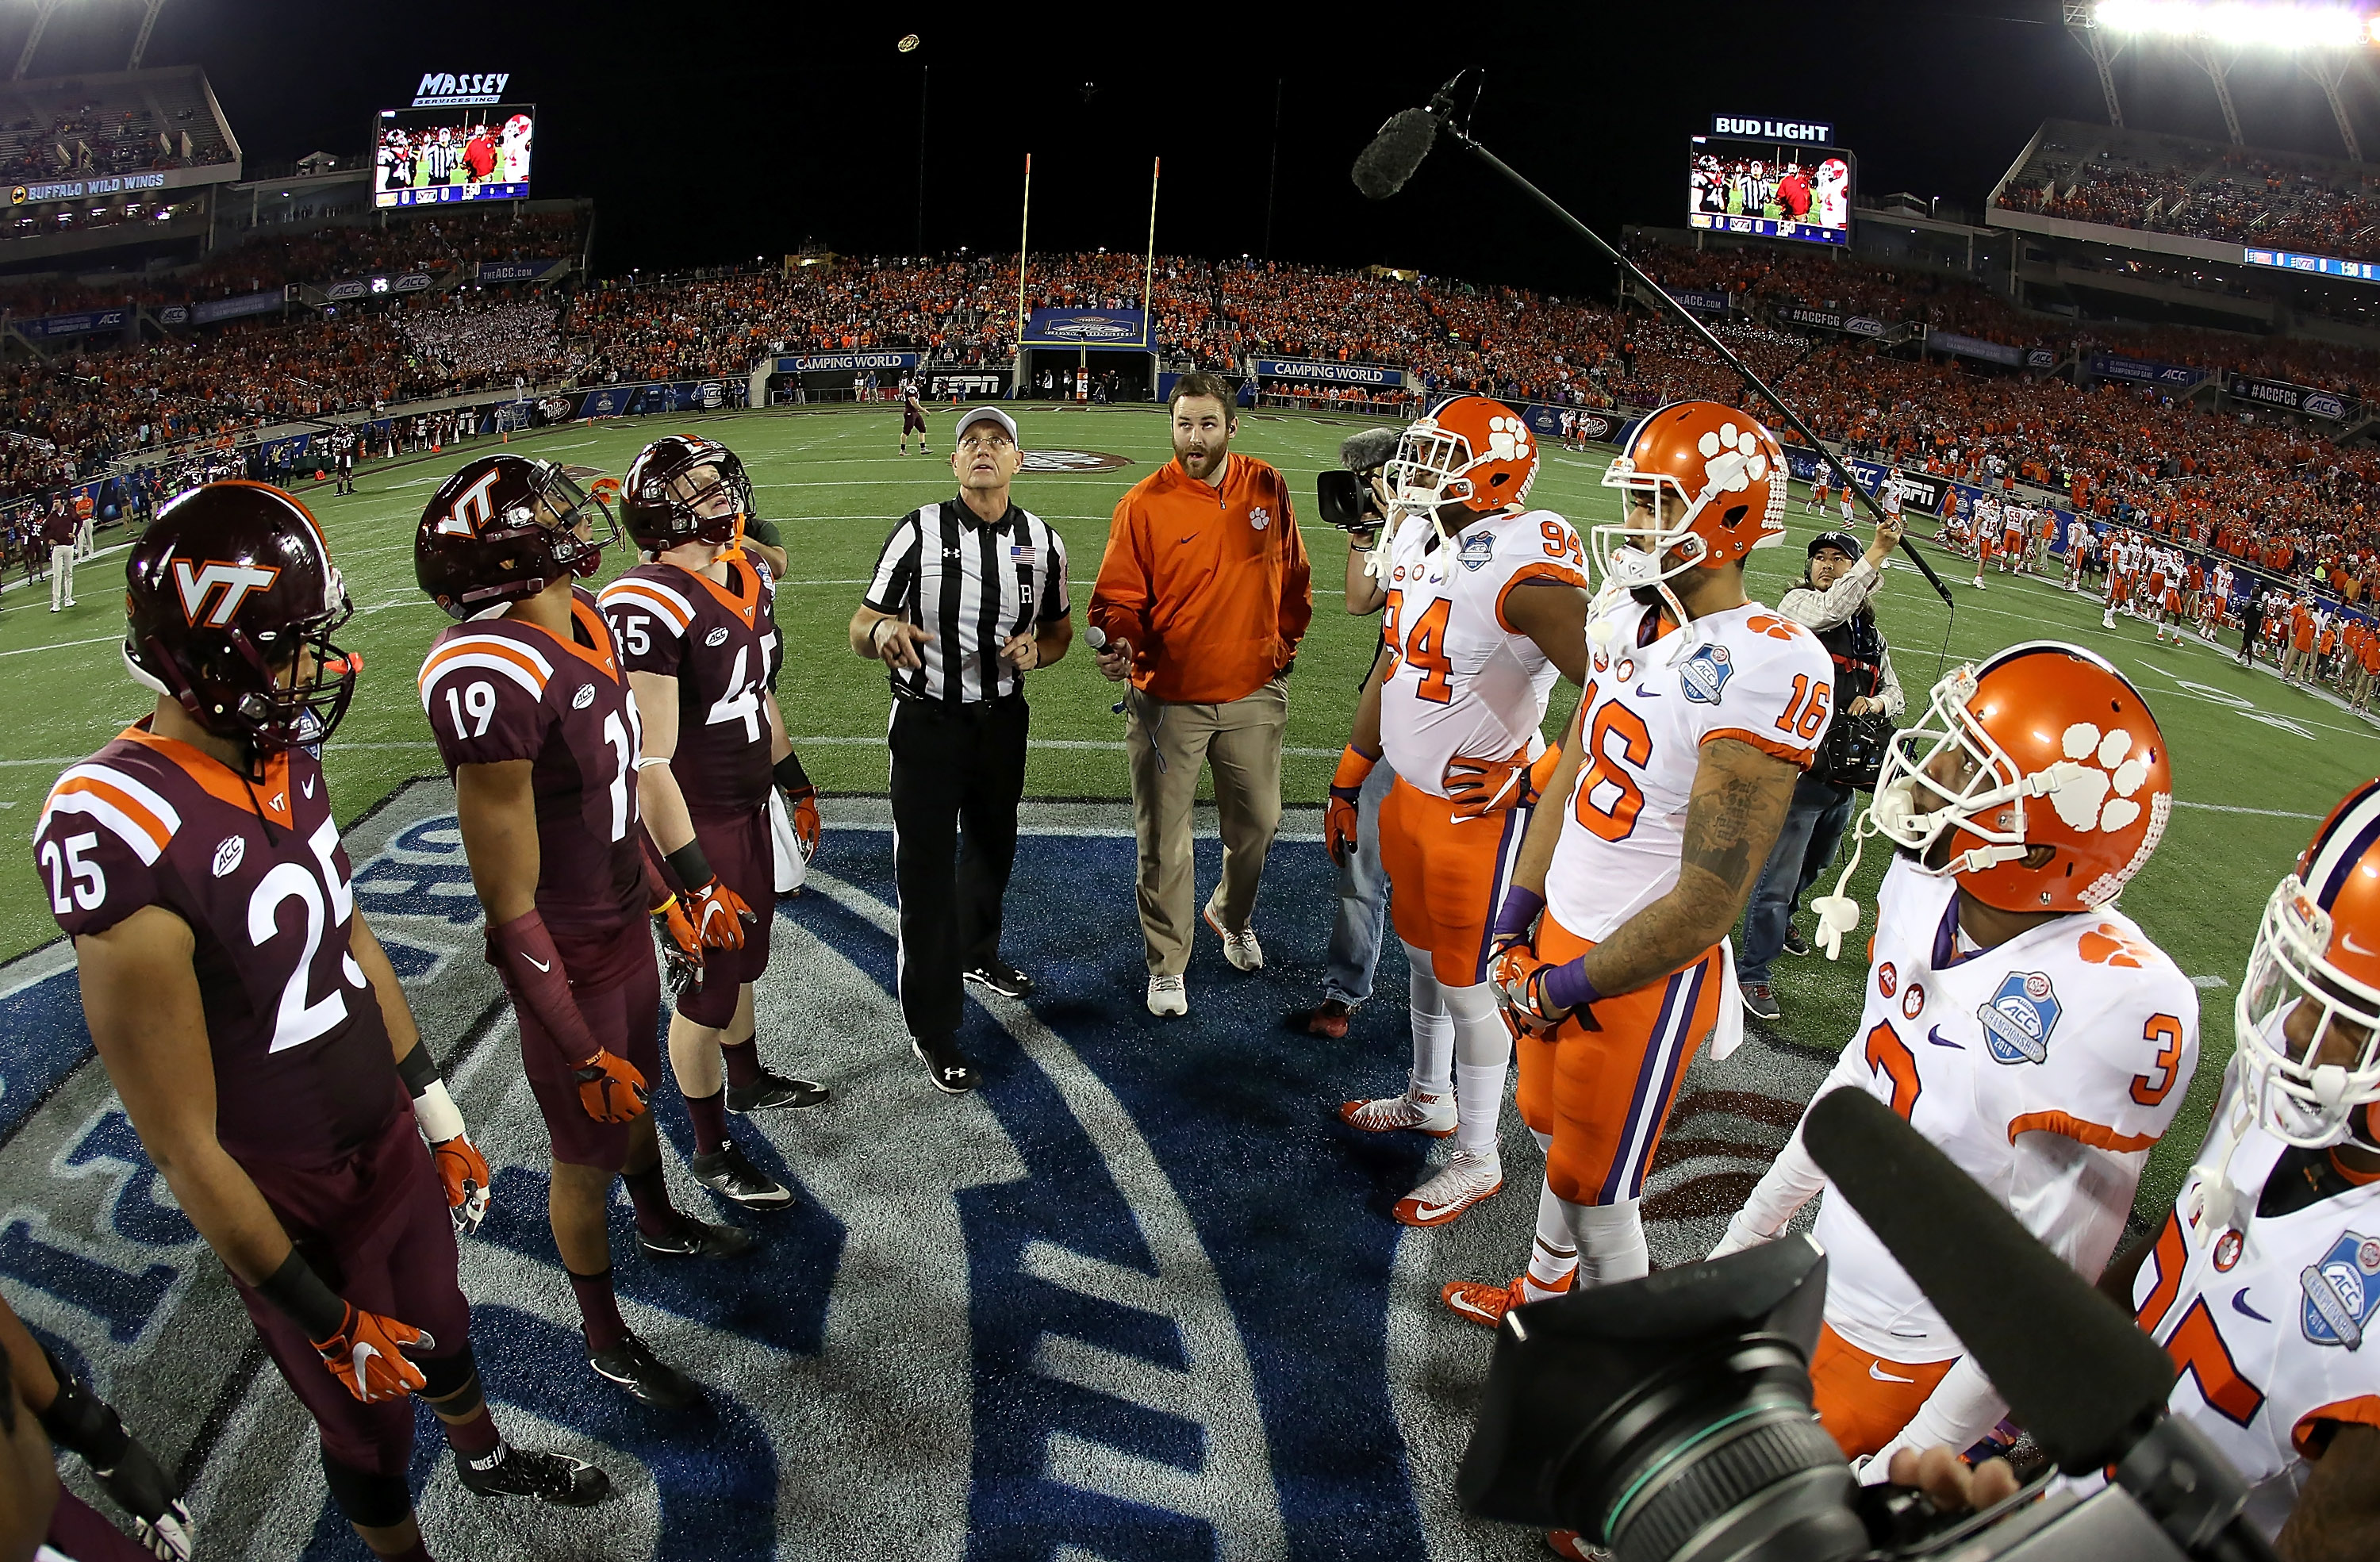 how to watch clemson football game live in australia